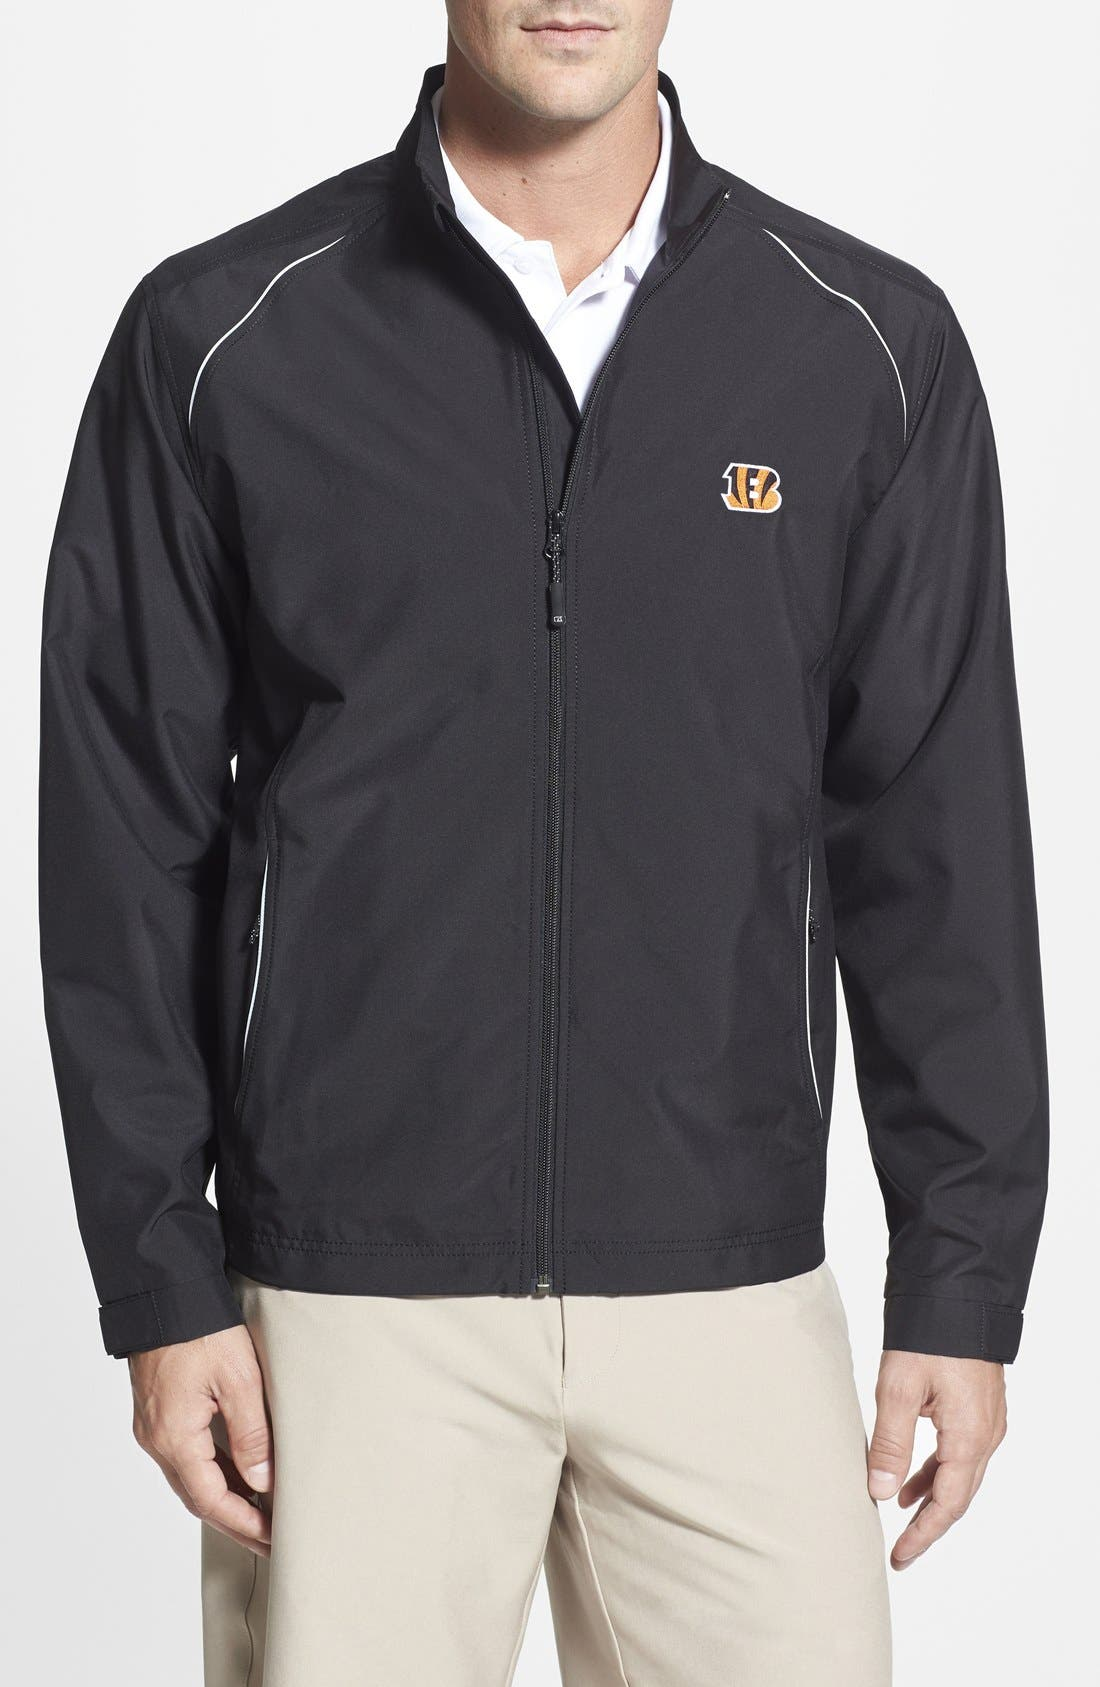 CUTTER & BUCK Cincinnati Bengals - Beacon WeatherTec Wind & Water Resistant Jacket